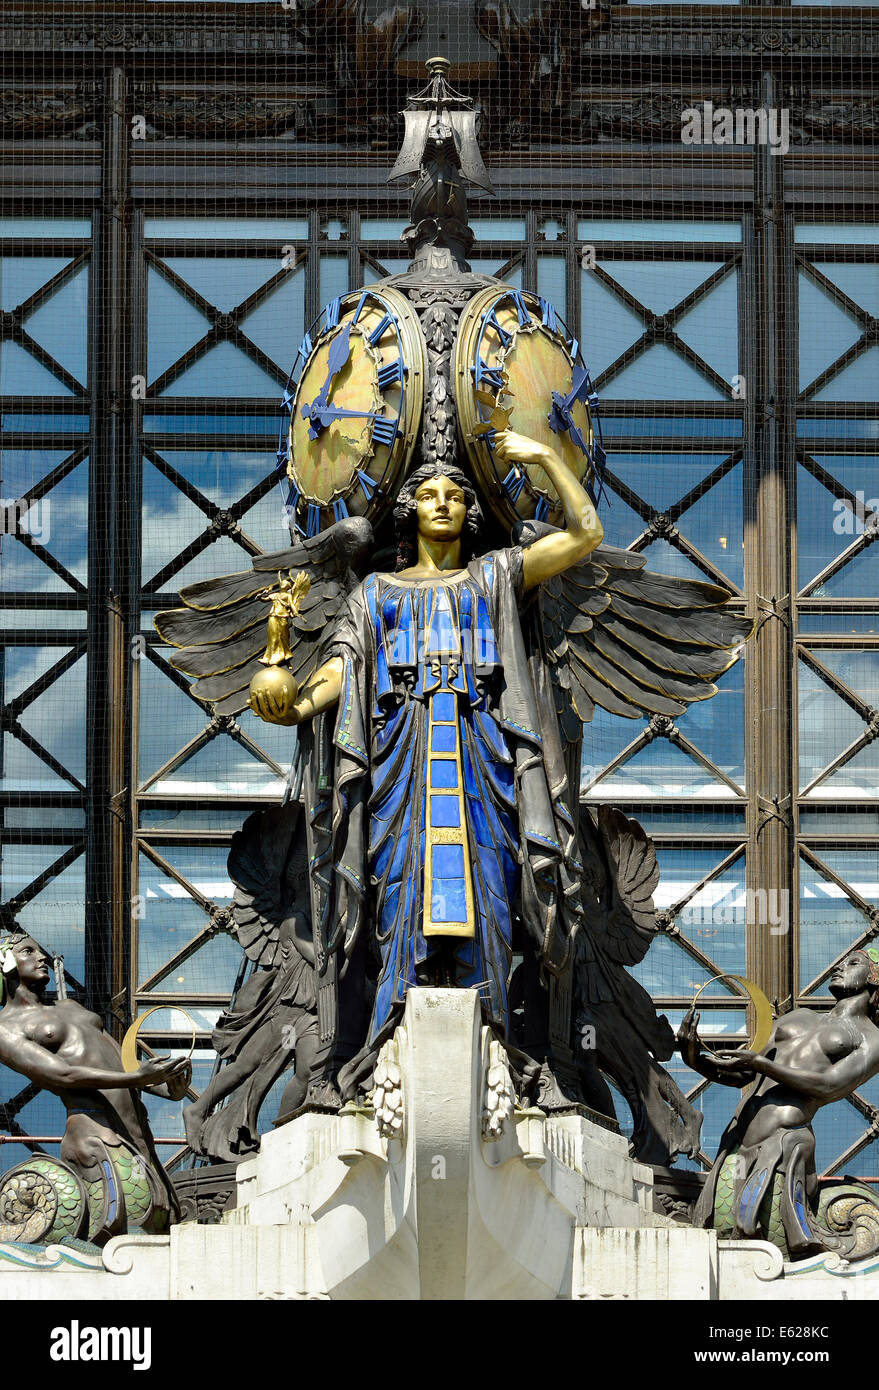 London, England, UK. Selfridges department store - The Queen of Time (Gilbert Bayes, 1928) on the facade - Stock Image